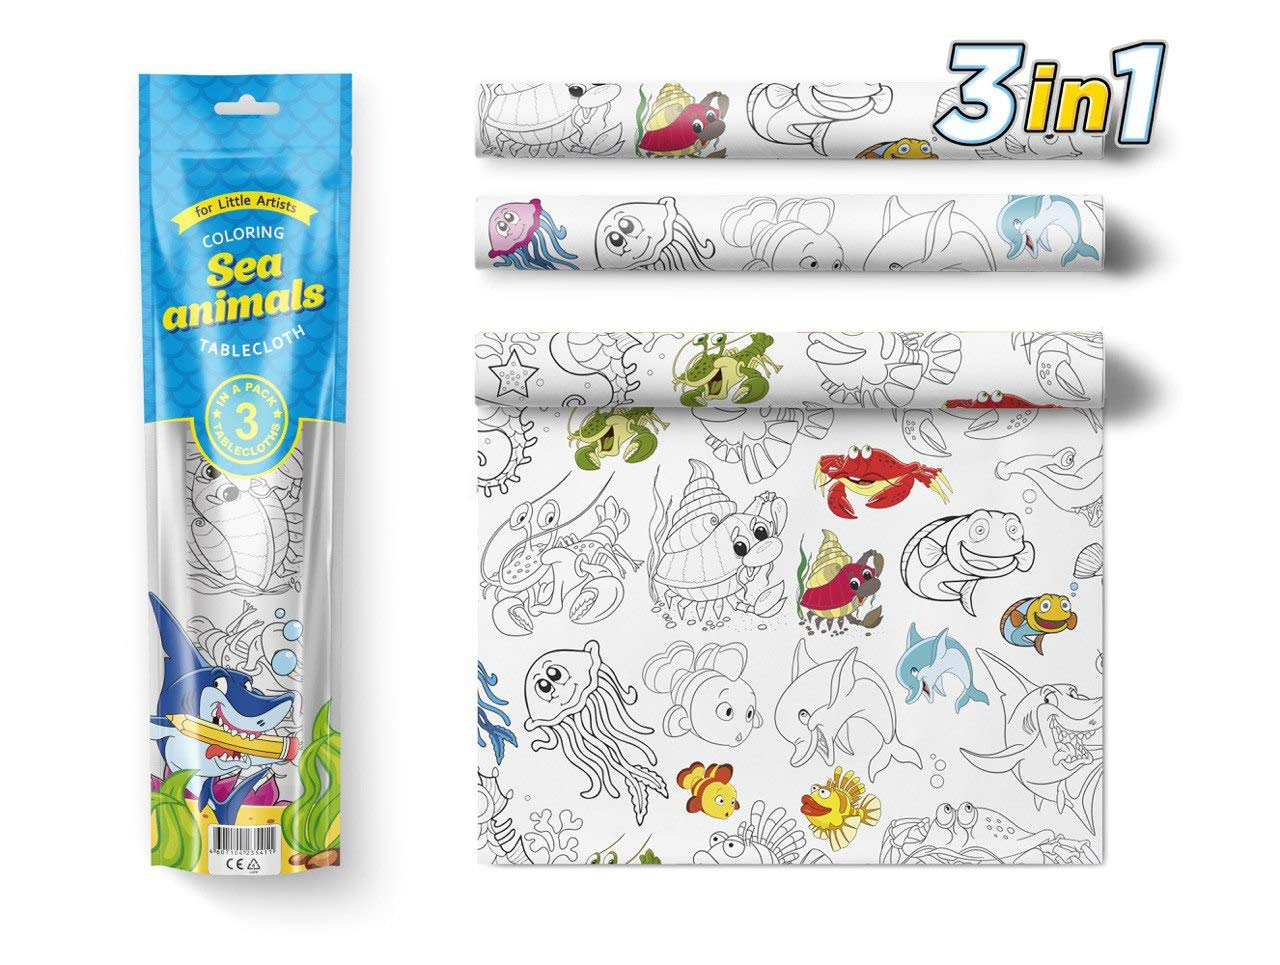 3 in 1 Large Coloring Tablecloth Water Resistant Poster for Kids and Toddlers Colorable Frame «Sea Animals» Fun Painting Activity for Party and Decor Paper Table Doodle Board by PolimerUnion